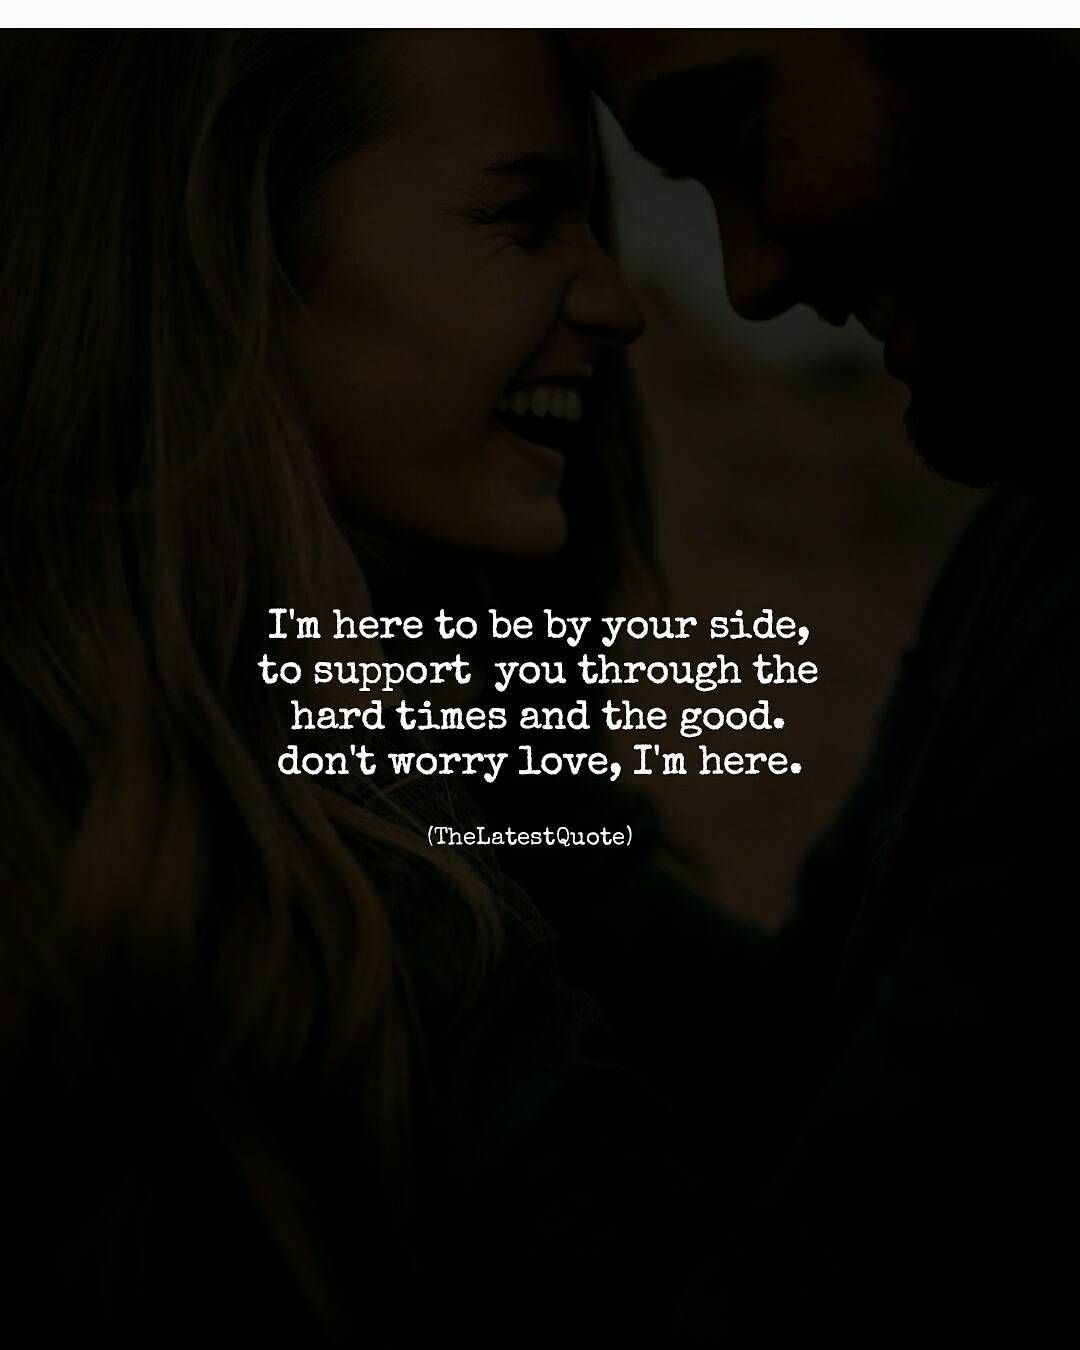 I M Here To Be By Your Side To Support You Through The Hard Times And The Good Don T Wo Friendship Quotes Support Friendship Quotes Time Quotes Relationship